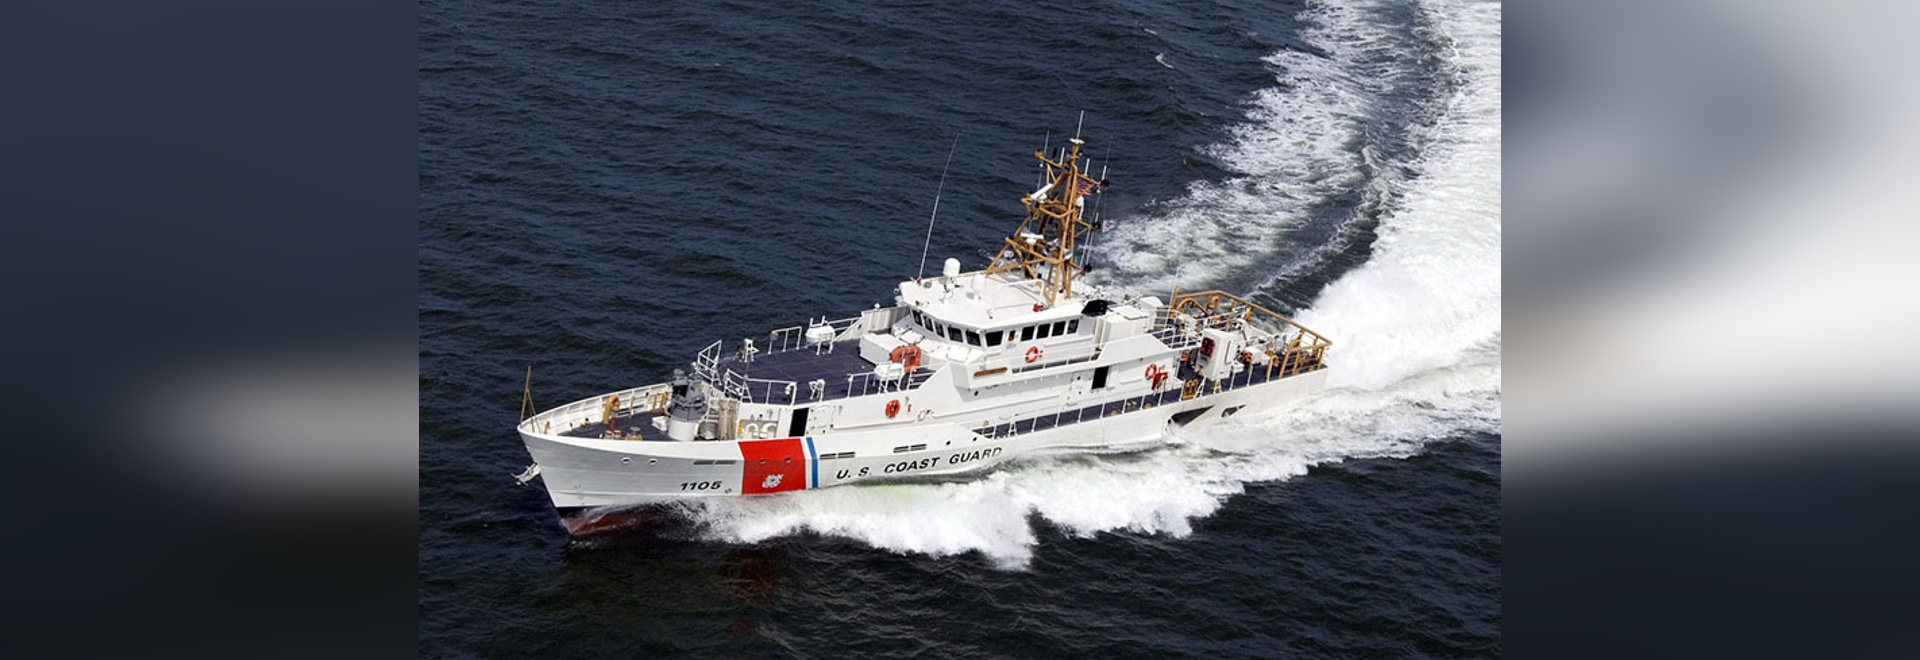 Sistership of the USCGC John McCormick, USCGC Margaret Norvell operating in the U.S. Gulf of Mexico. Bollinger Shipyards photo